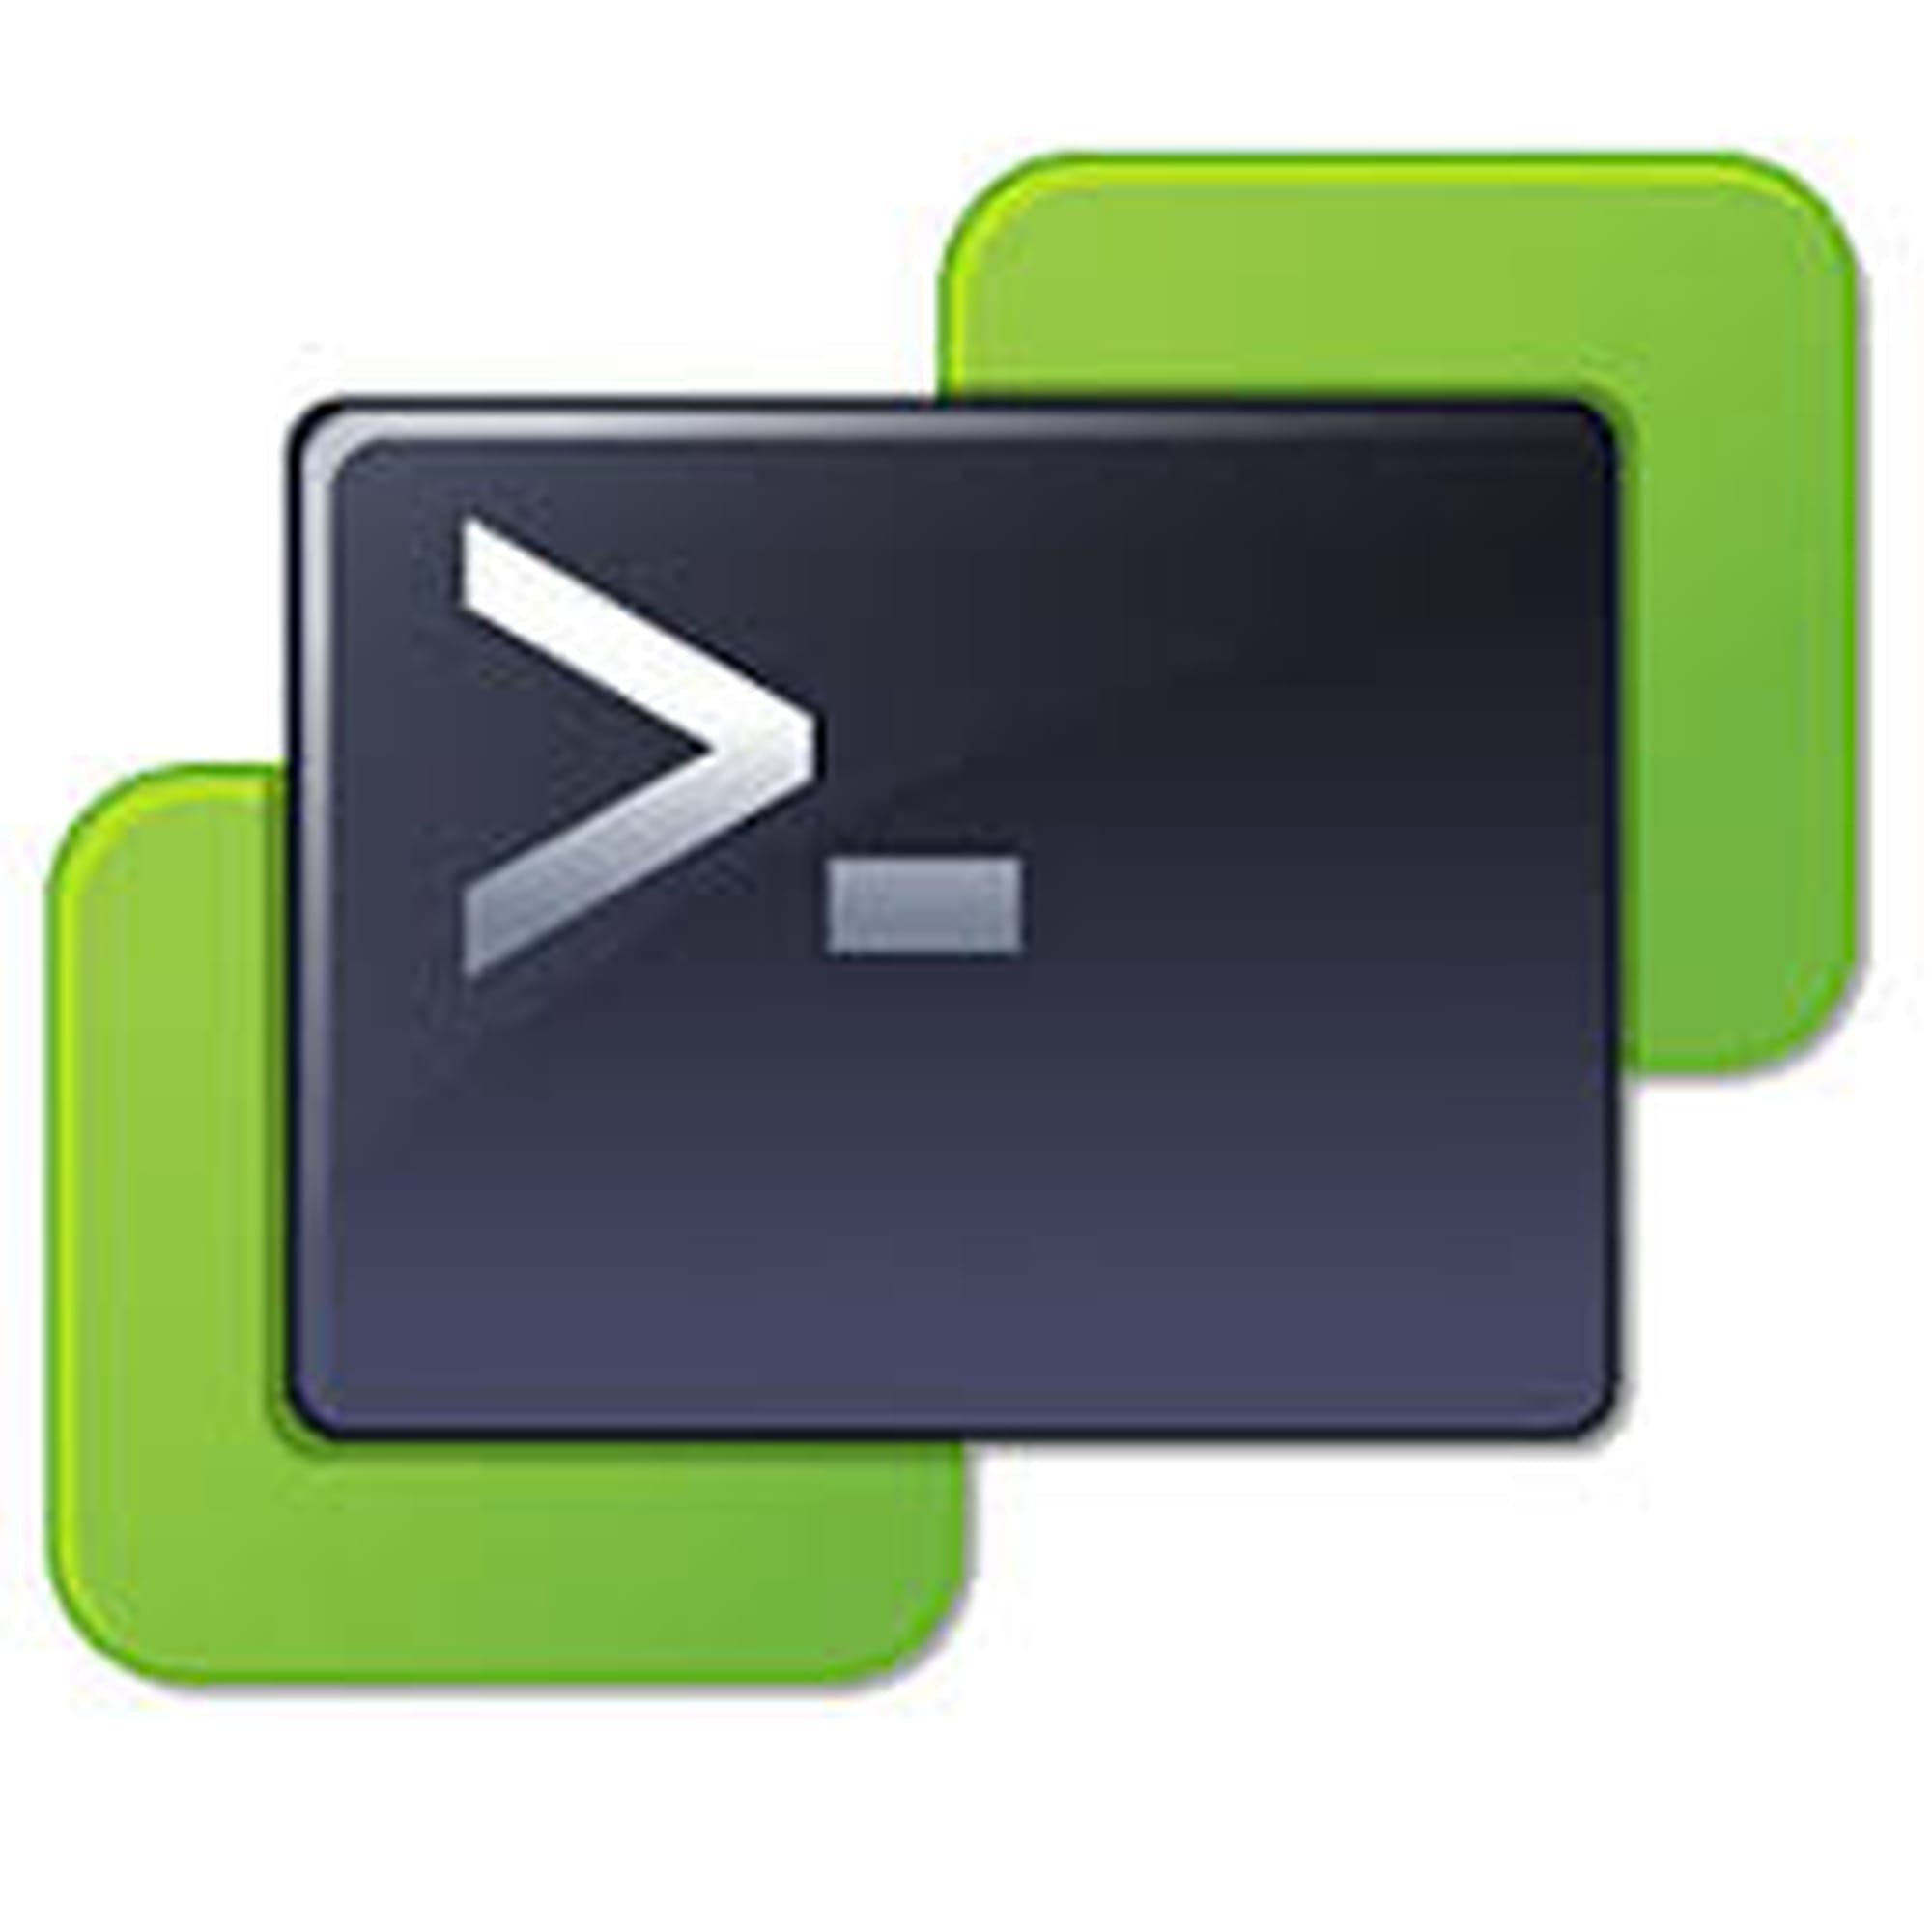 How to Download and Install VMware PowerCLI